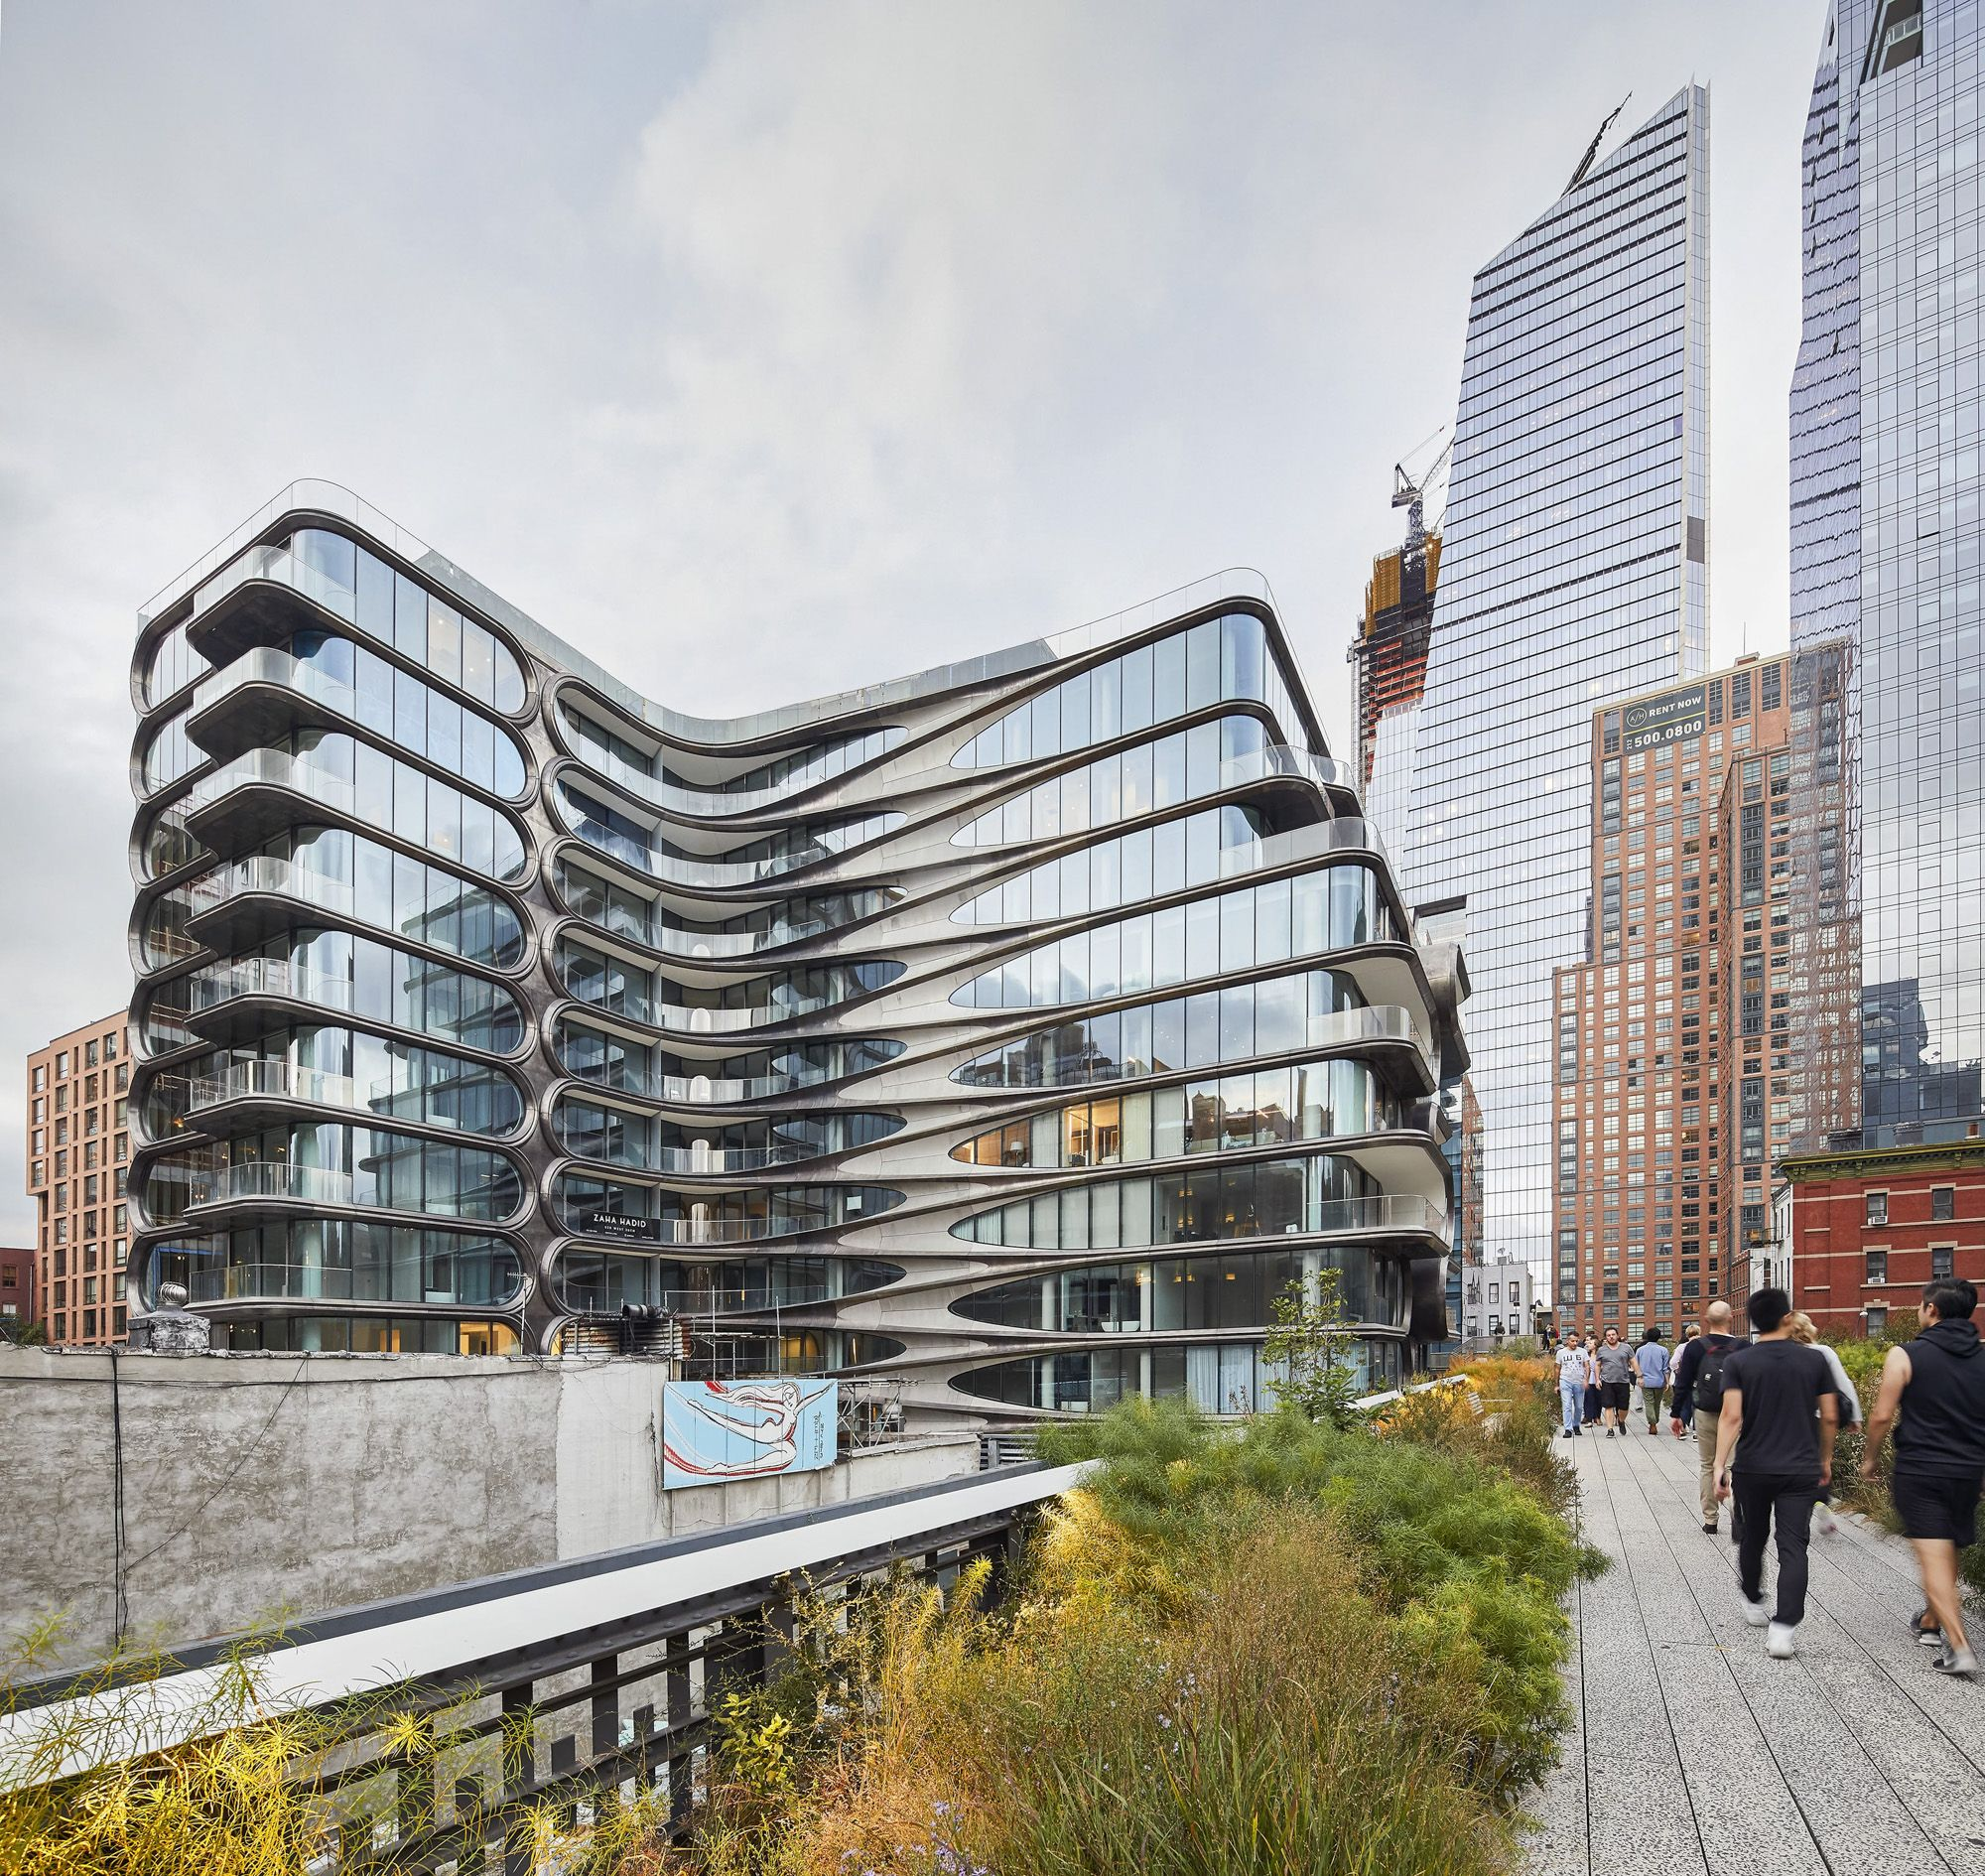 520 West 28Th Street By Zaha Hadid Architects Image Hufton+Crow